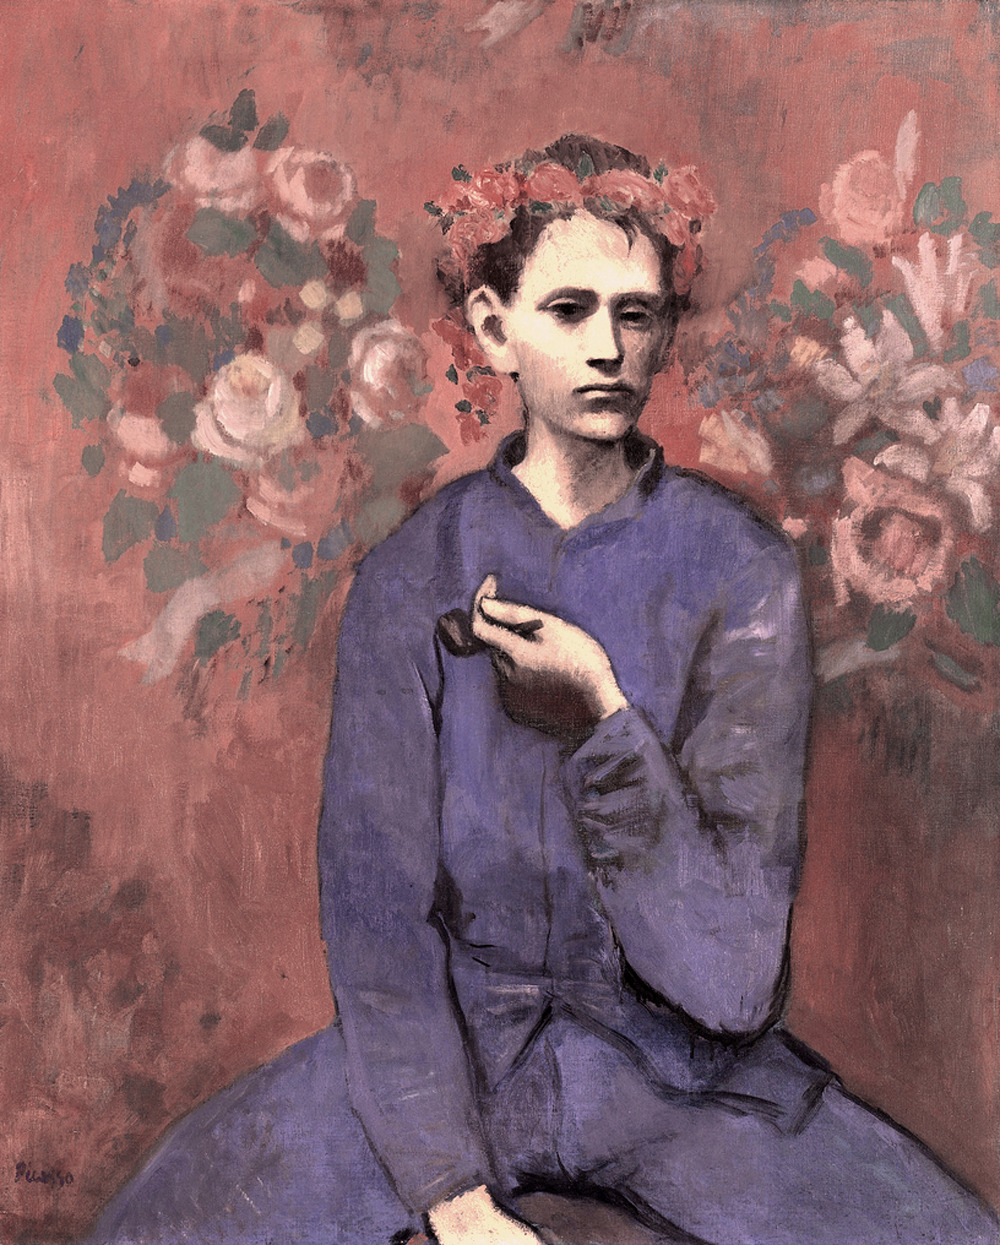 Pablo Picasso - Boy with Pipe (1905)